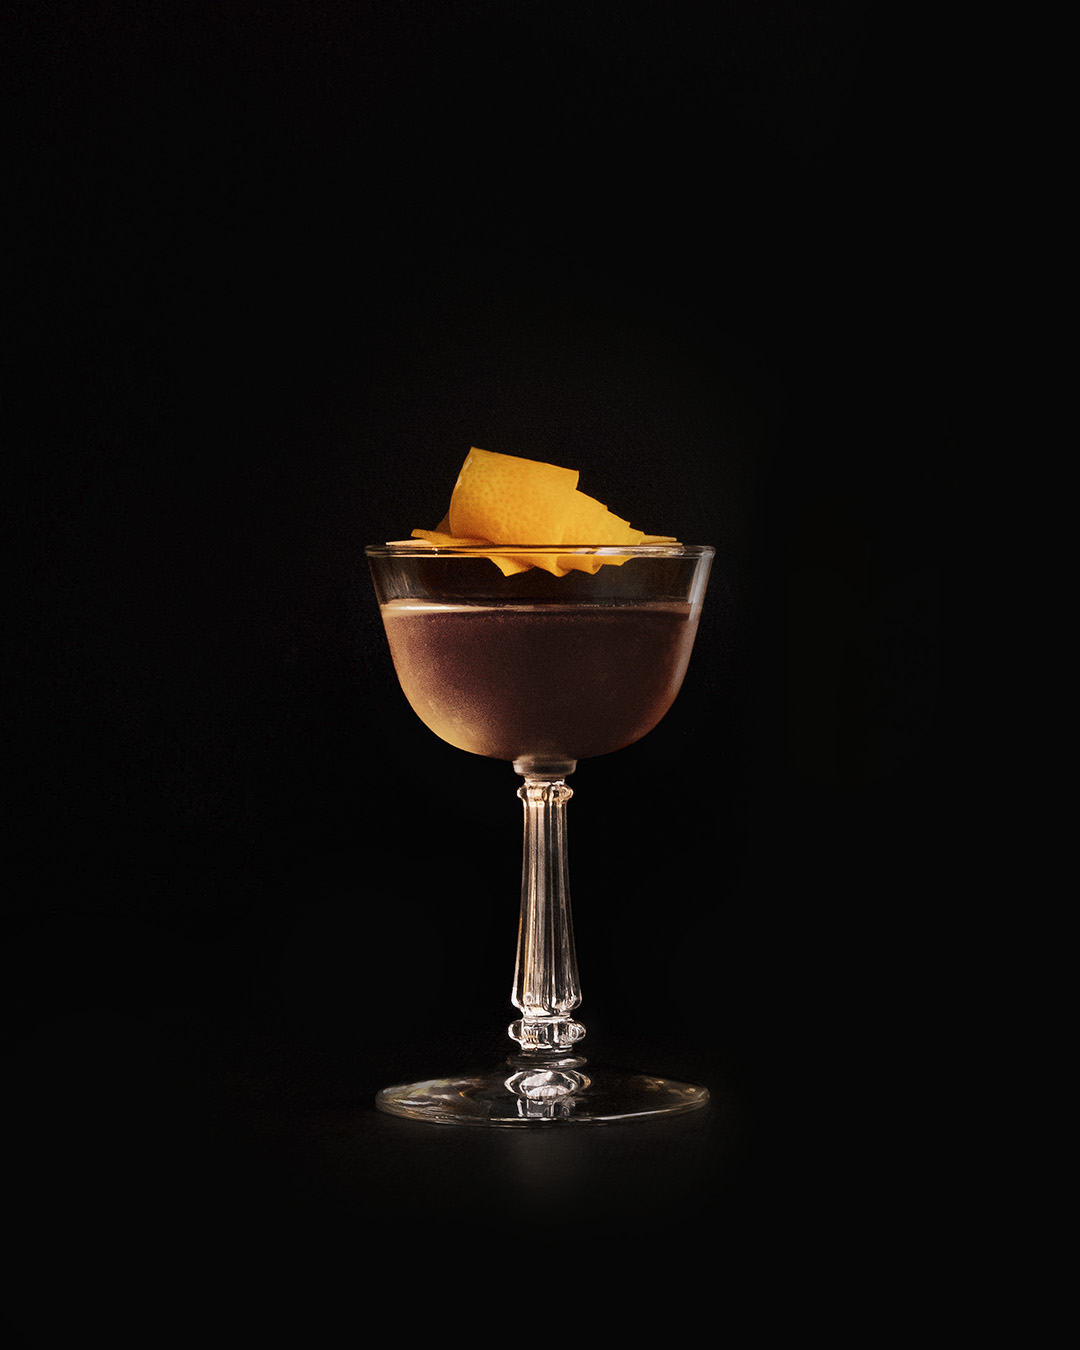 CLASSIC GIN MARTINI   1  oz  Gin 1  oz  Pomp & Whimsy 1  oz  french vermouth dash angostura bitters   Combine ingredients in a mixing glass or cocktail shaker and fill with ice. Stir well to chill.    Strain into a chilled cocktail glass.    Twist a piece of lemon peel over the drink for aromatics and use the twist as a garnish.